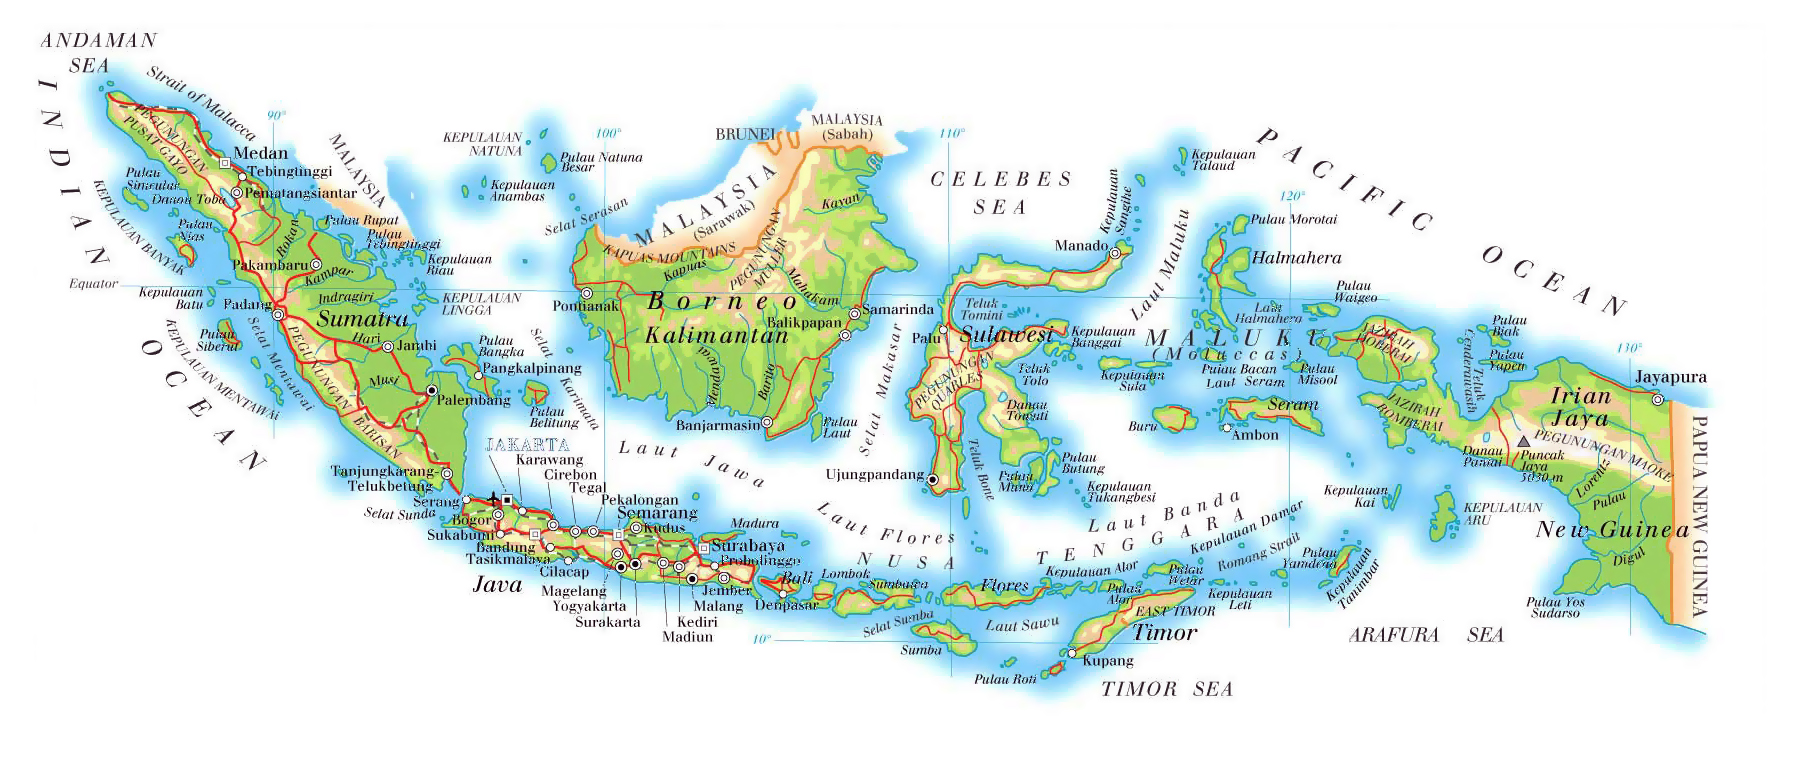 Maps of indonesia detailed map of indonesia in english tourist detailed elevation map of indonesia with roads relief and airports gumiabroncs Images